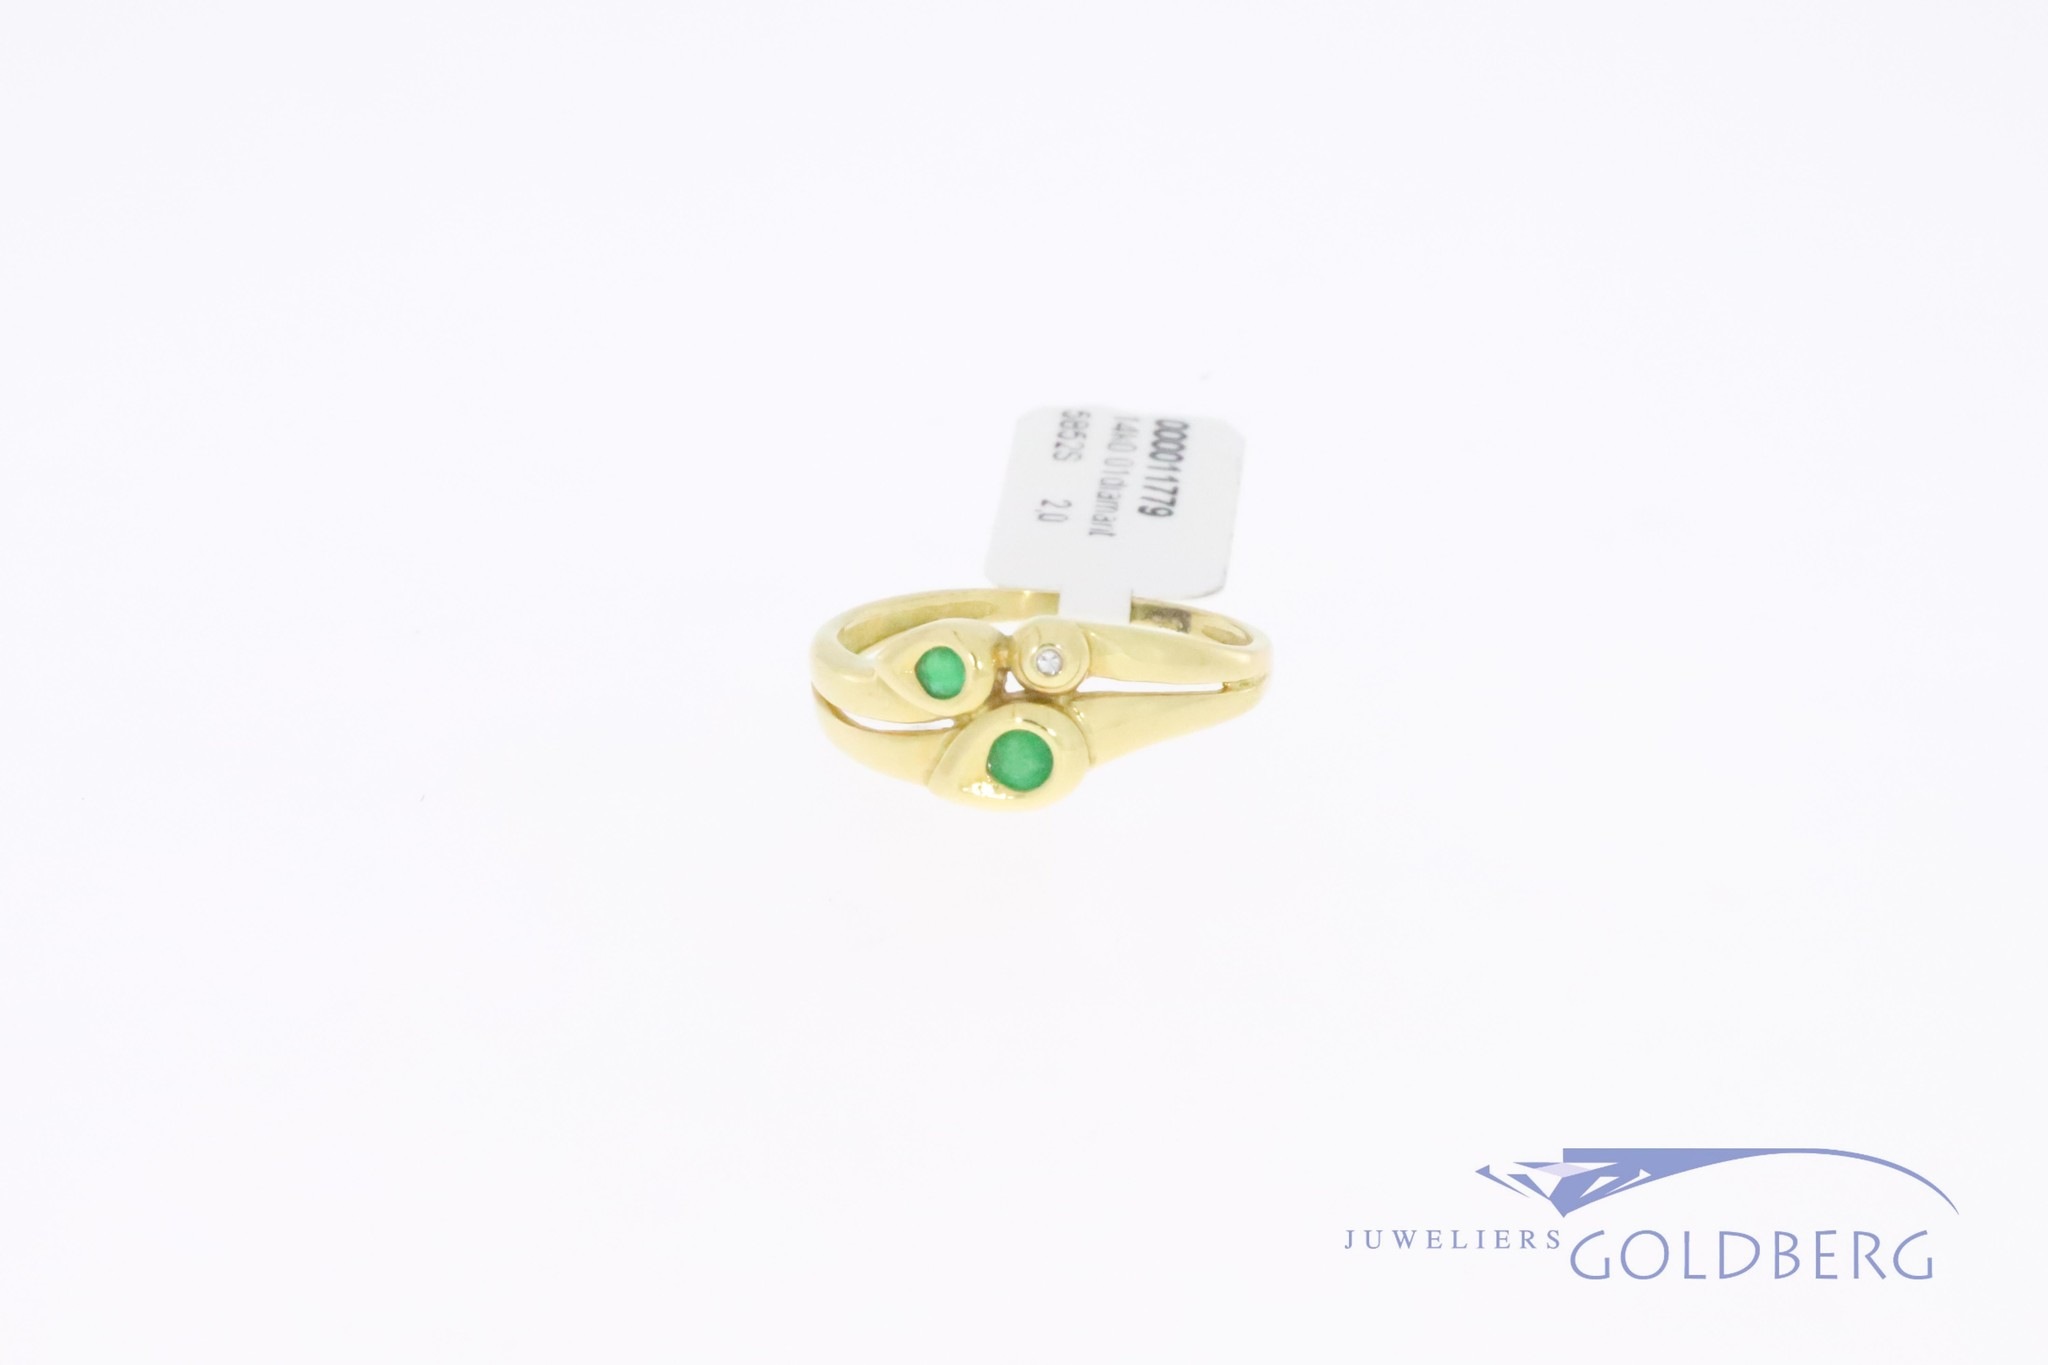 Small 14k gold vintage fantasy ring with 2 small emeralds and 1x single cut diamond